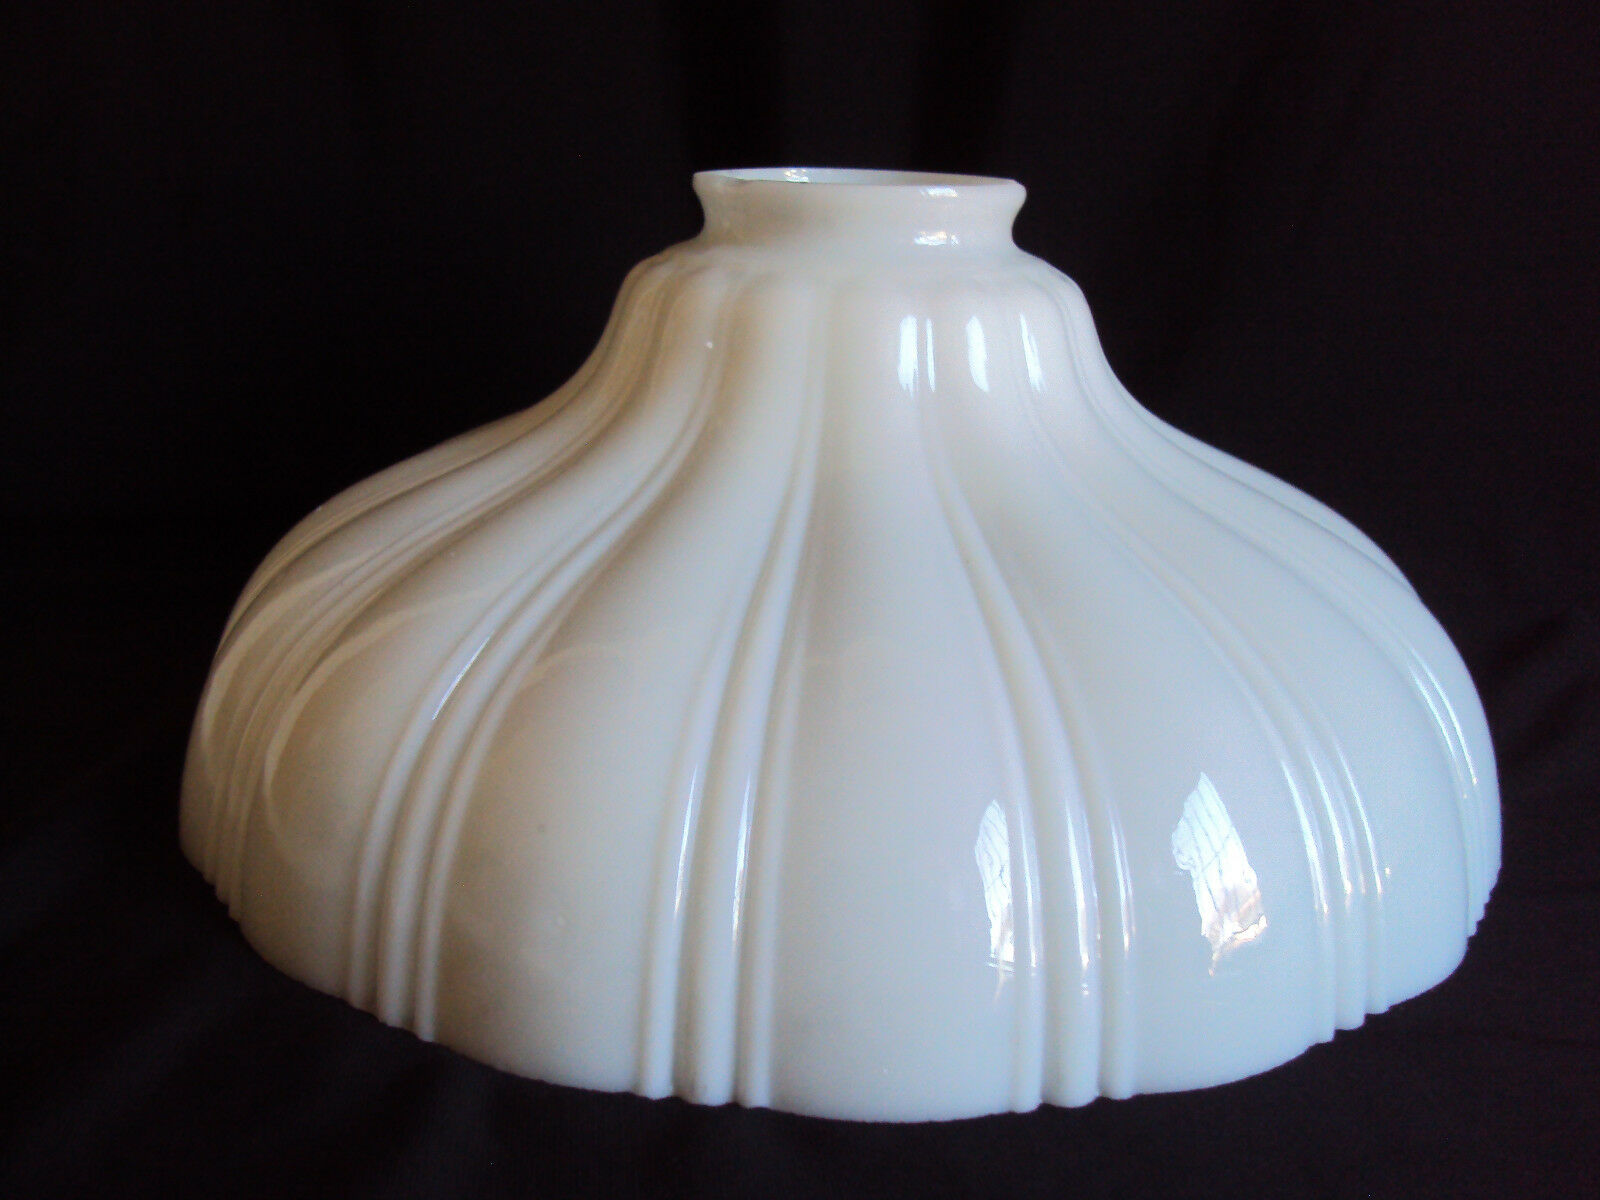 Vintage White Glass Hanging Swag Lamp Parts Shade  $19.99